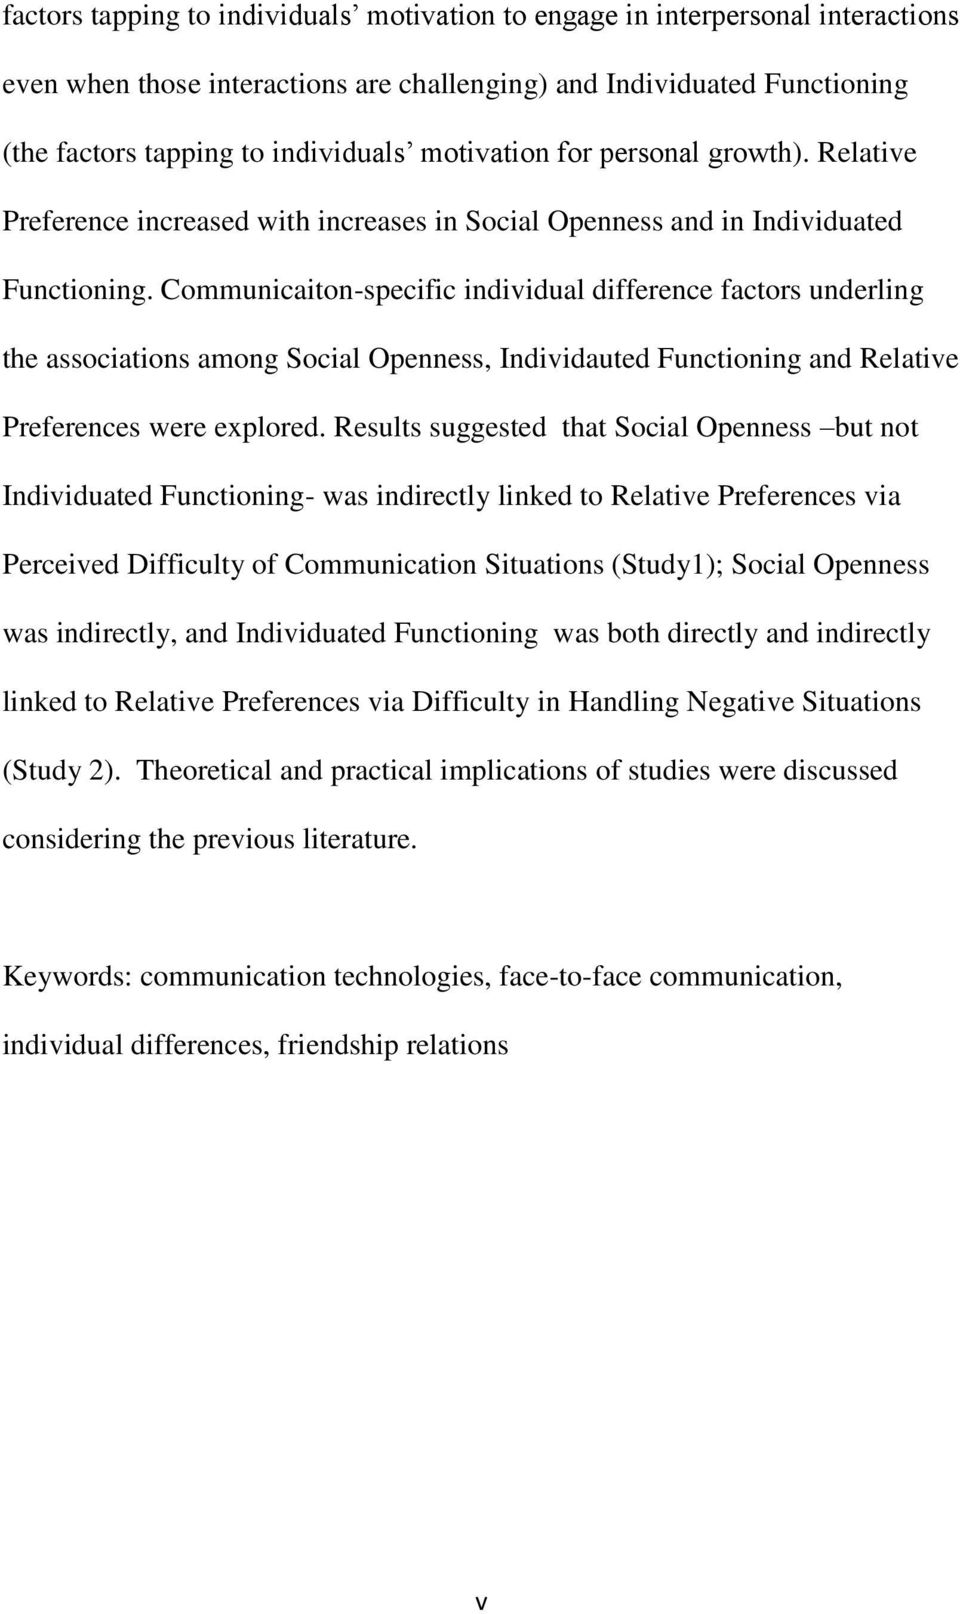 Communicaiton-specific individual difference factors underling the associations among Social Openness, Individauted Functioning and Relative Preferences were explored.